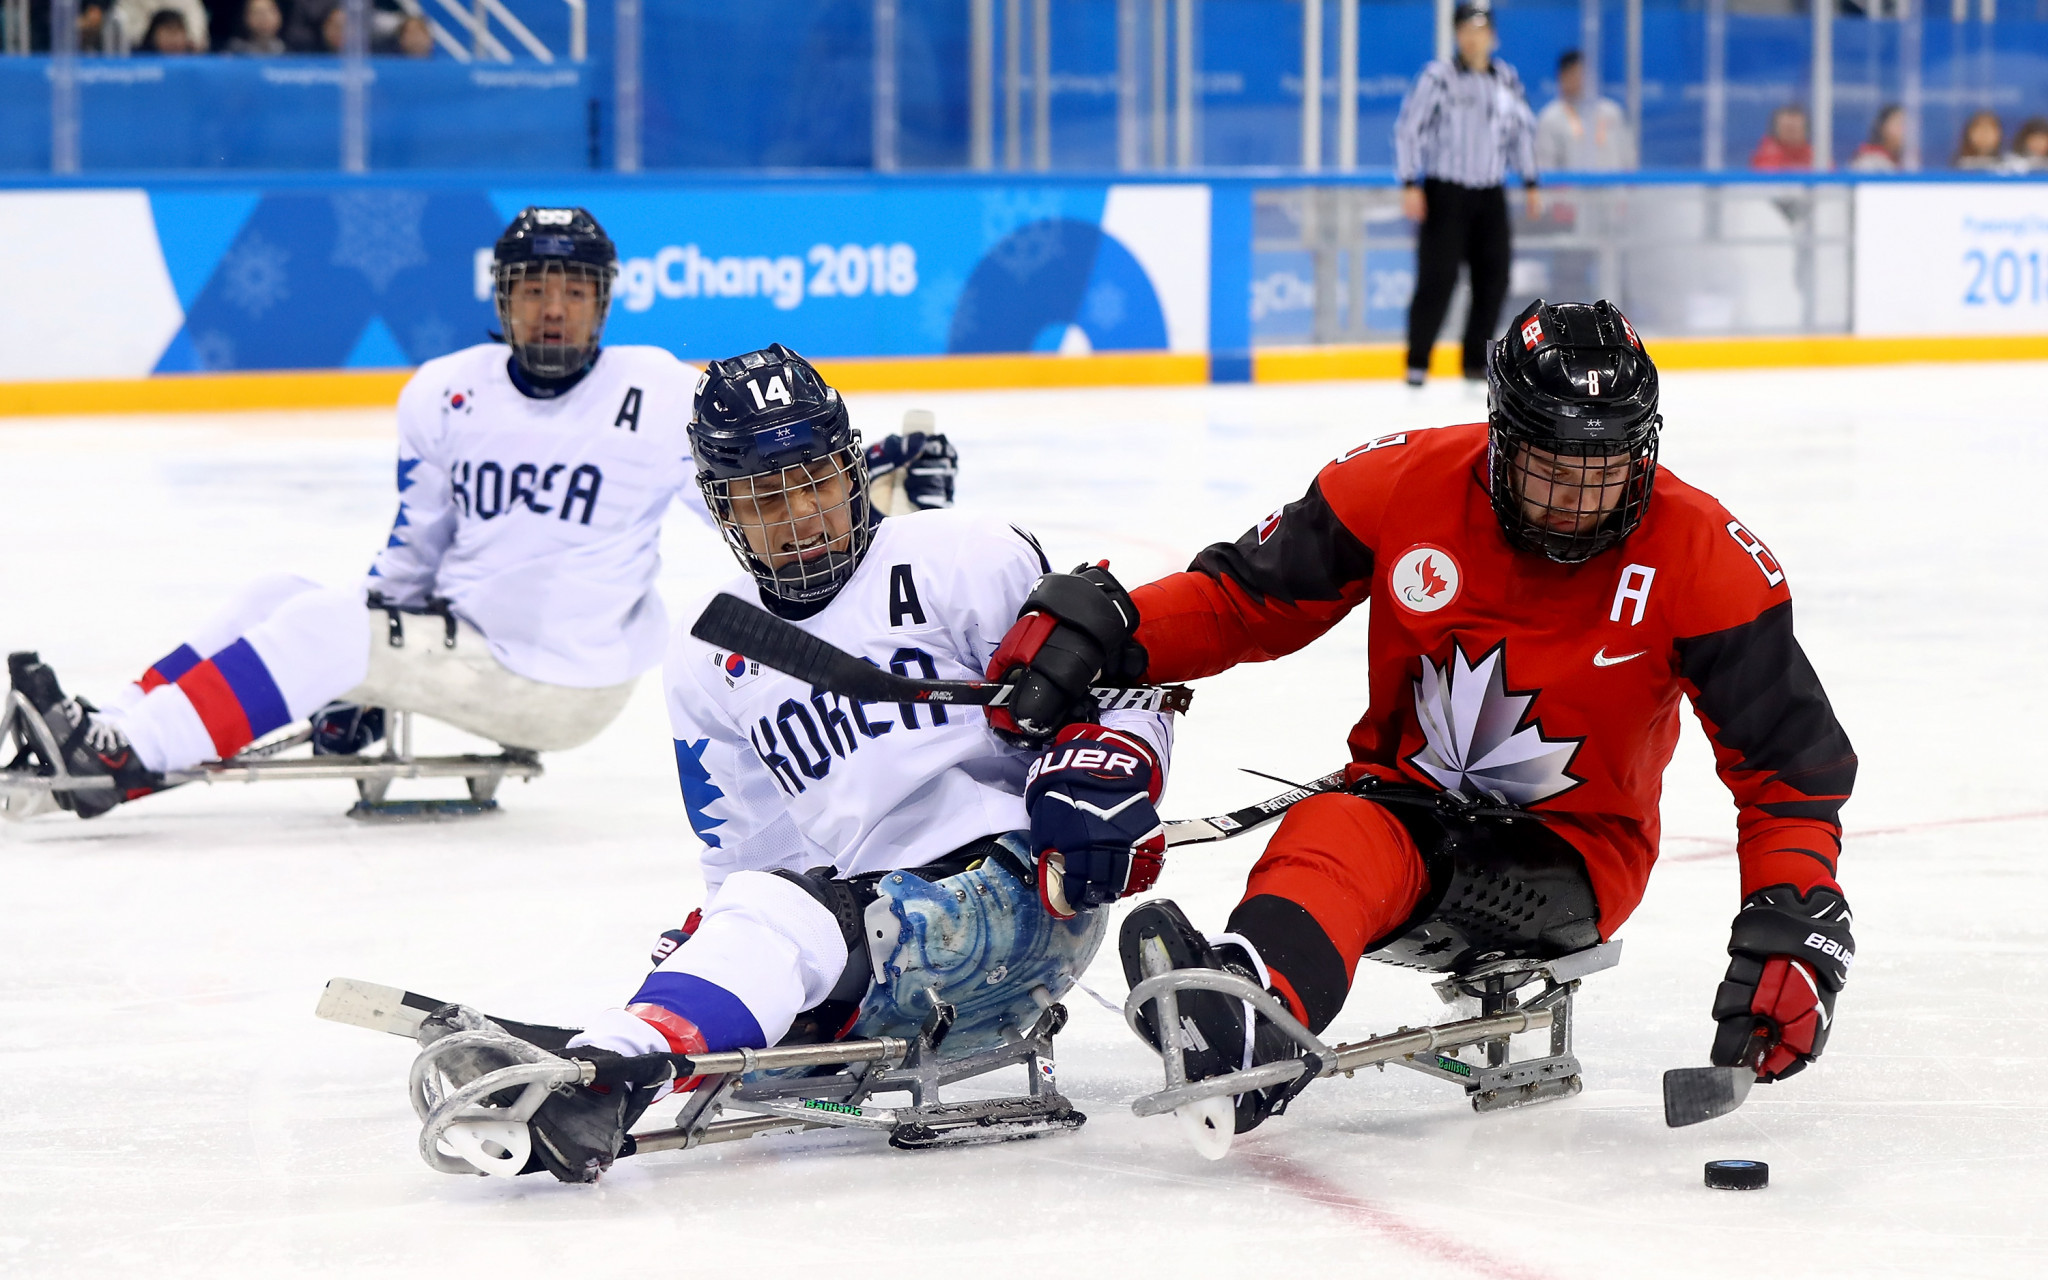 Canadian Para ice hockey captain Tyler McGregor is set to chat to Kevin Rempel in the first of the Instagram Live sessions ©Getty Images